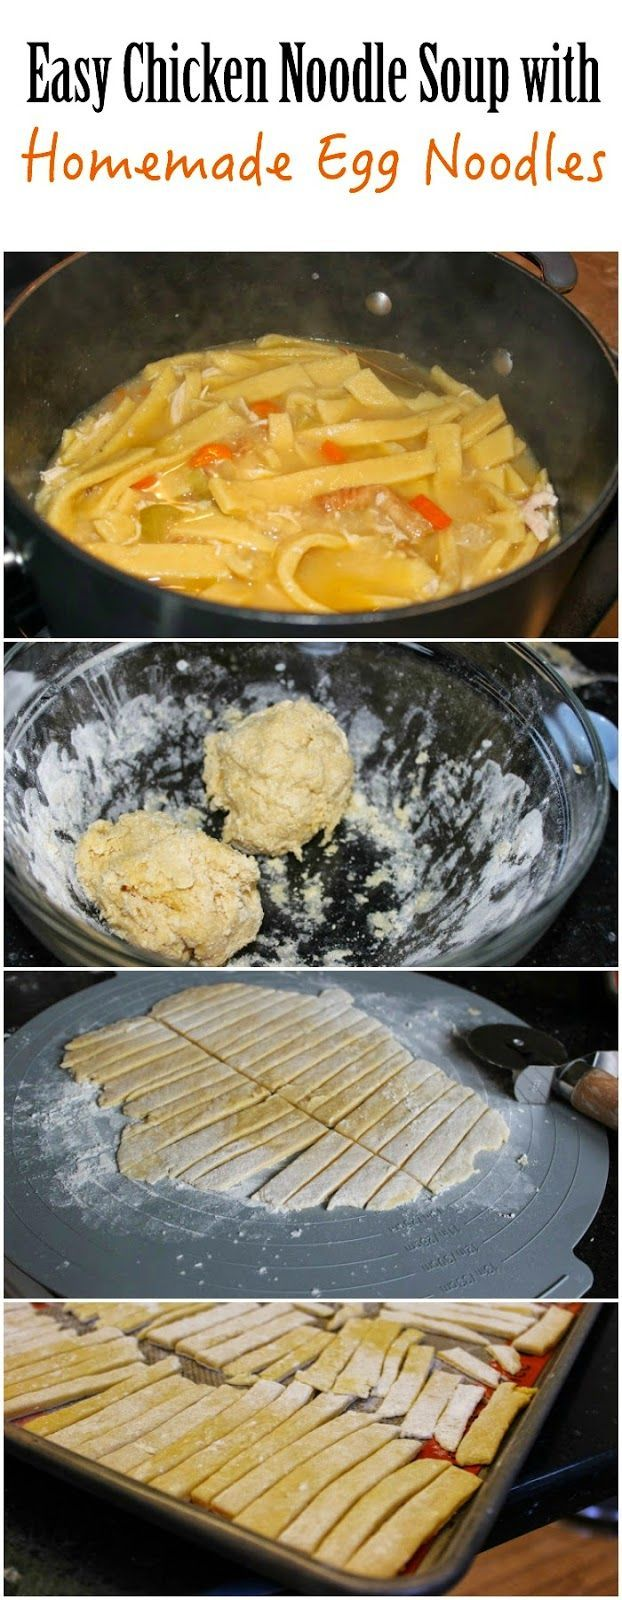 Play. Party. Pin.: Quick Chicken Noodle Soup with Homemade Egg Noodles